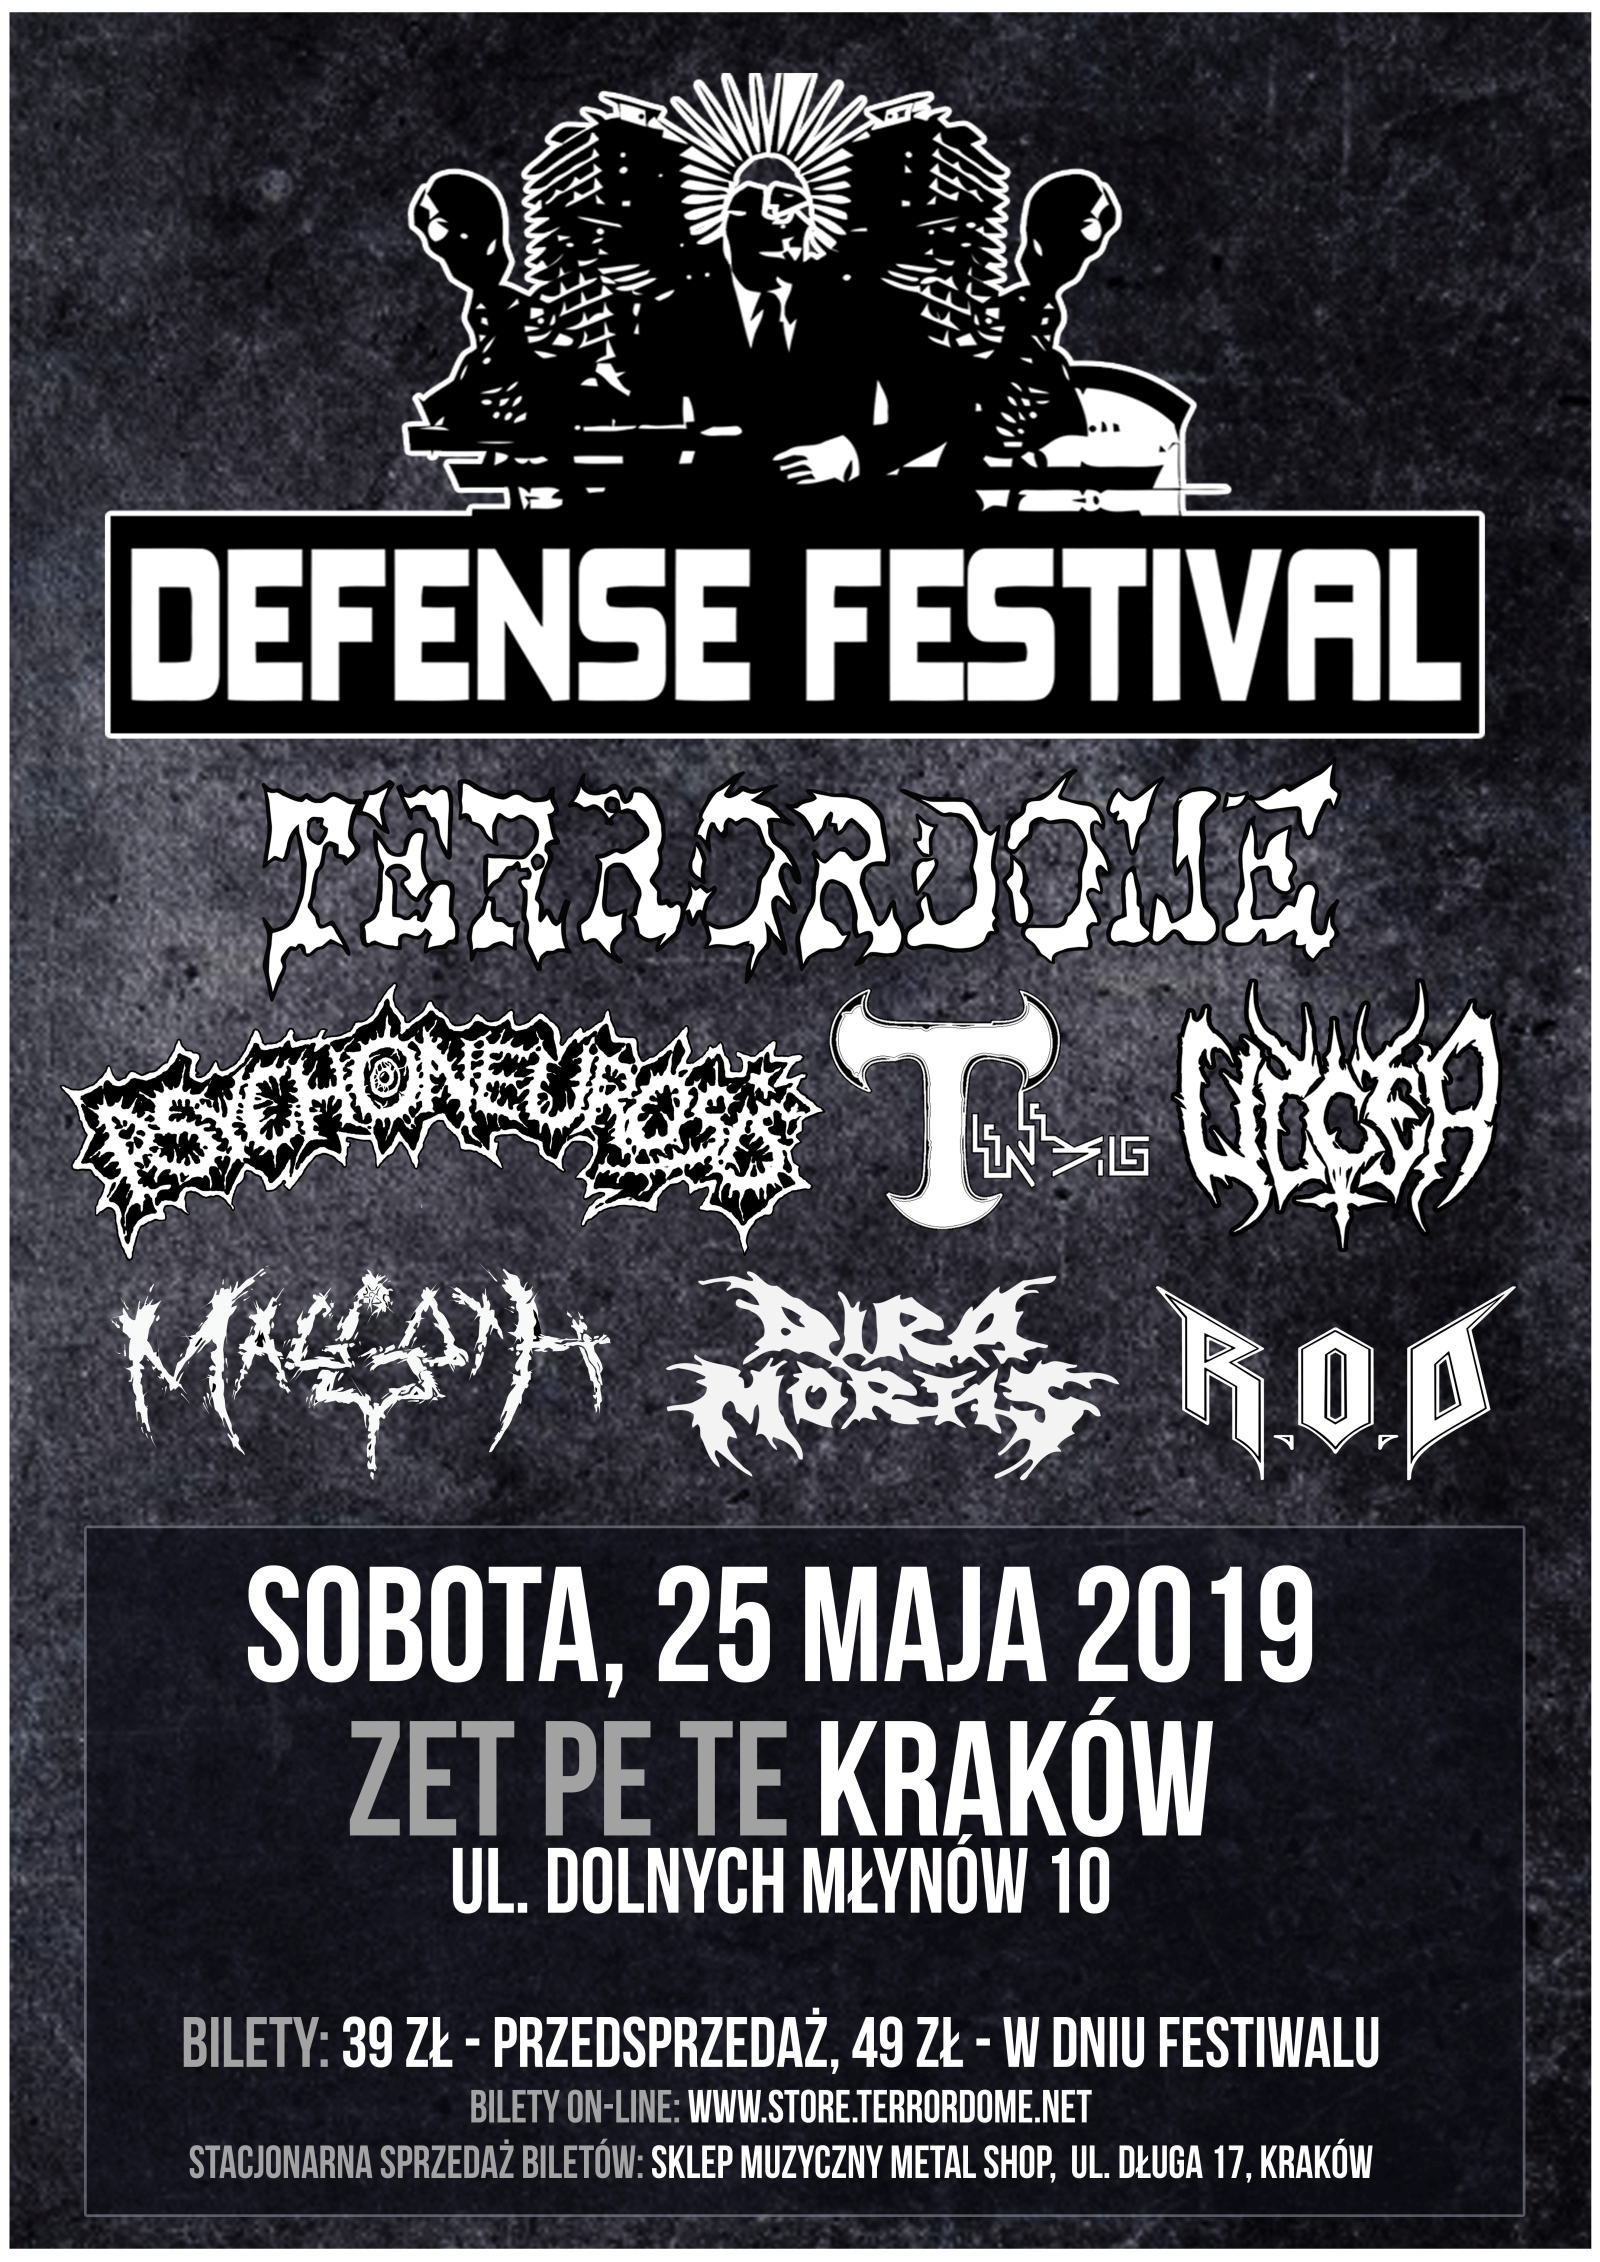 http://www.defensemerch.com/wp-content/uploads/2019/05/DefenseFest_poster_LQ-net.jpg